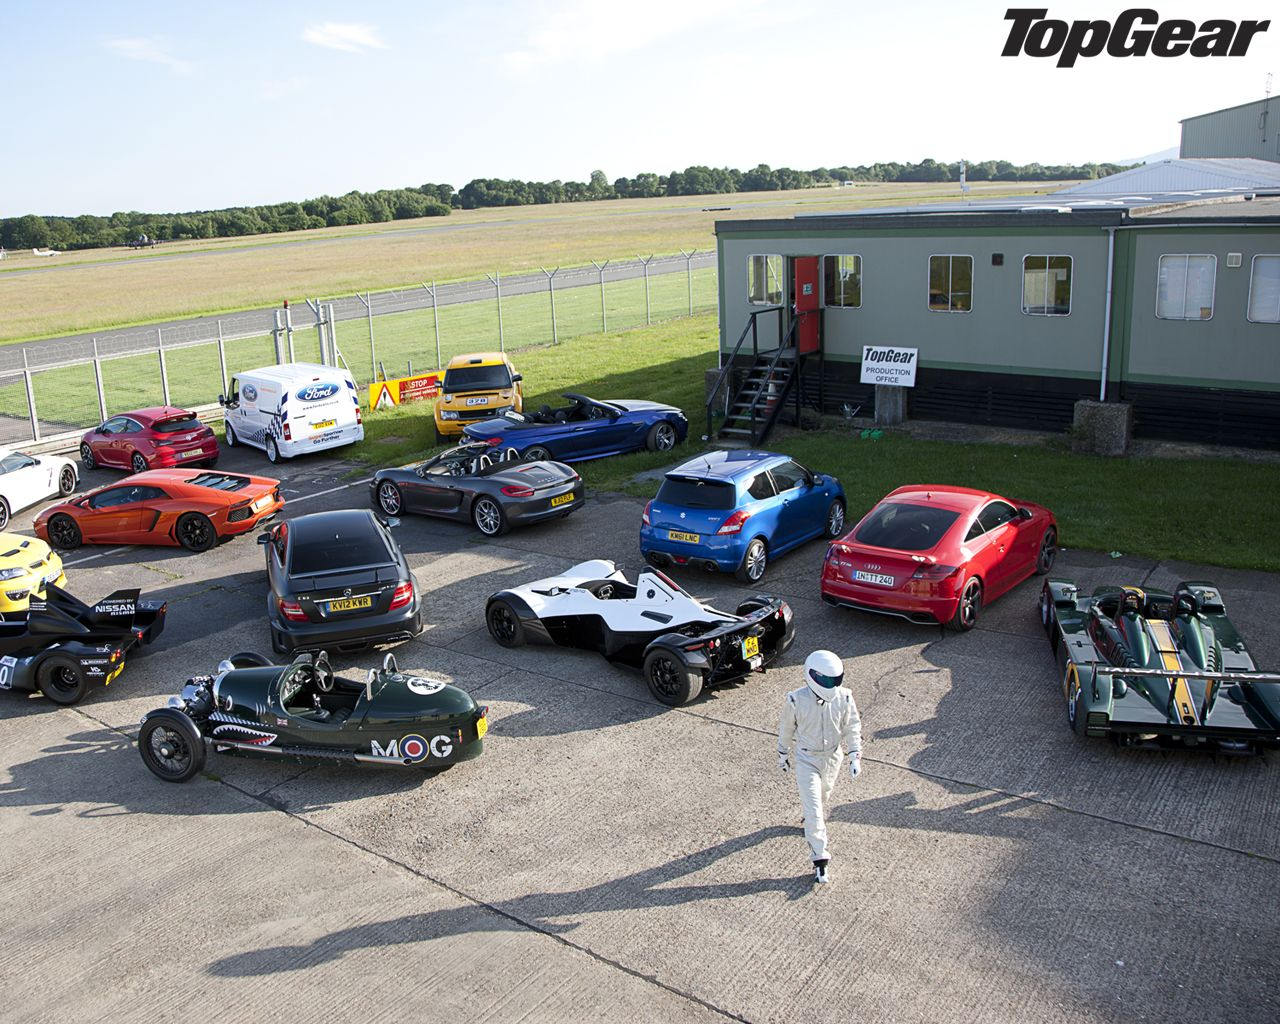 pin by bryon crow on the stig top gear gears super cars